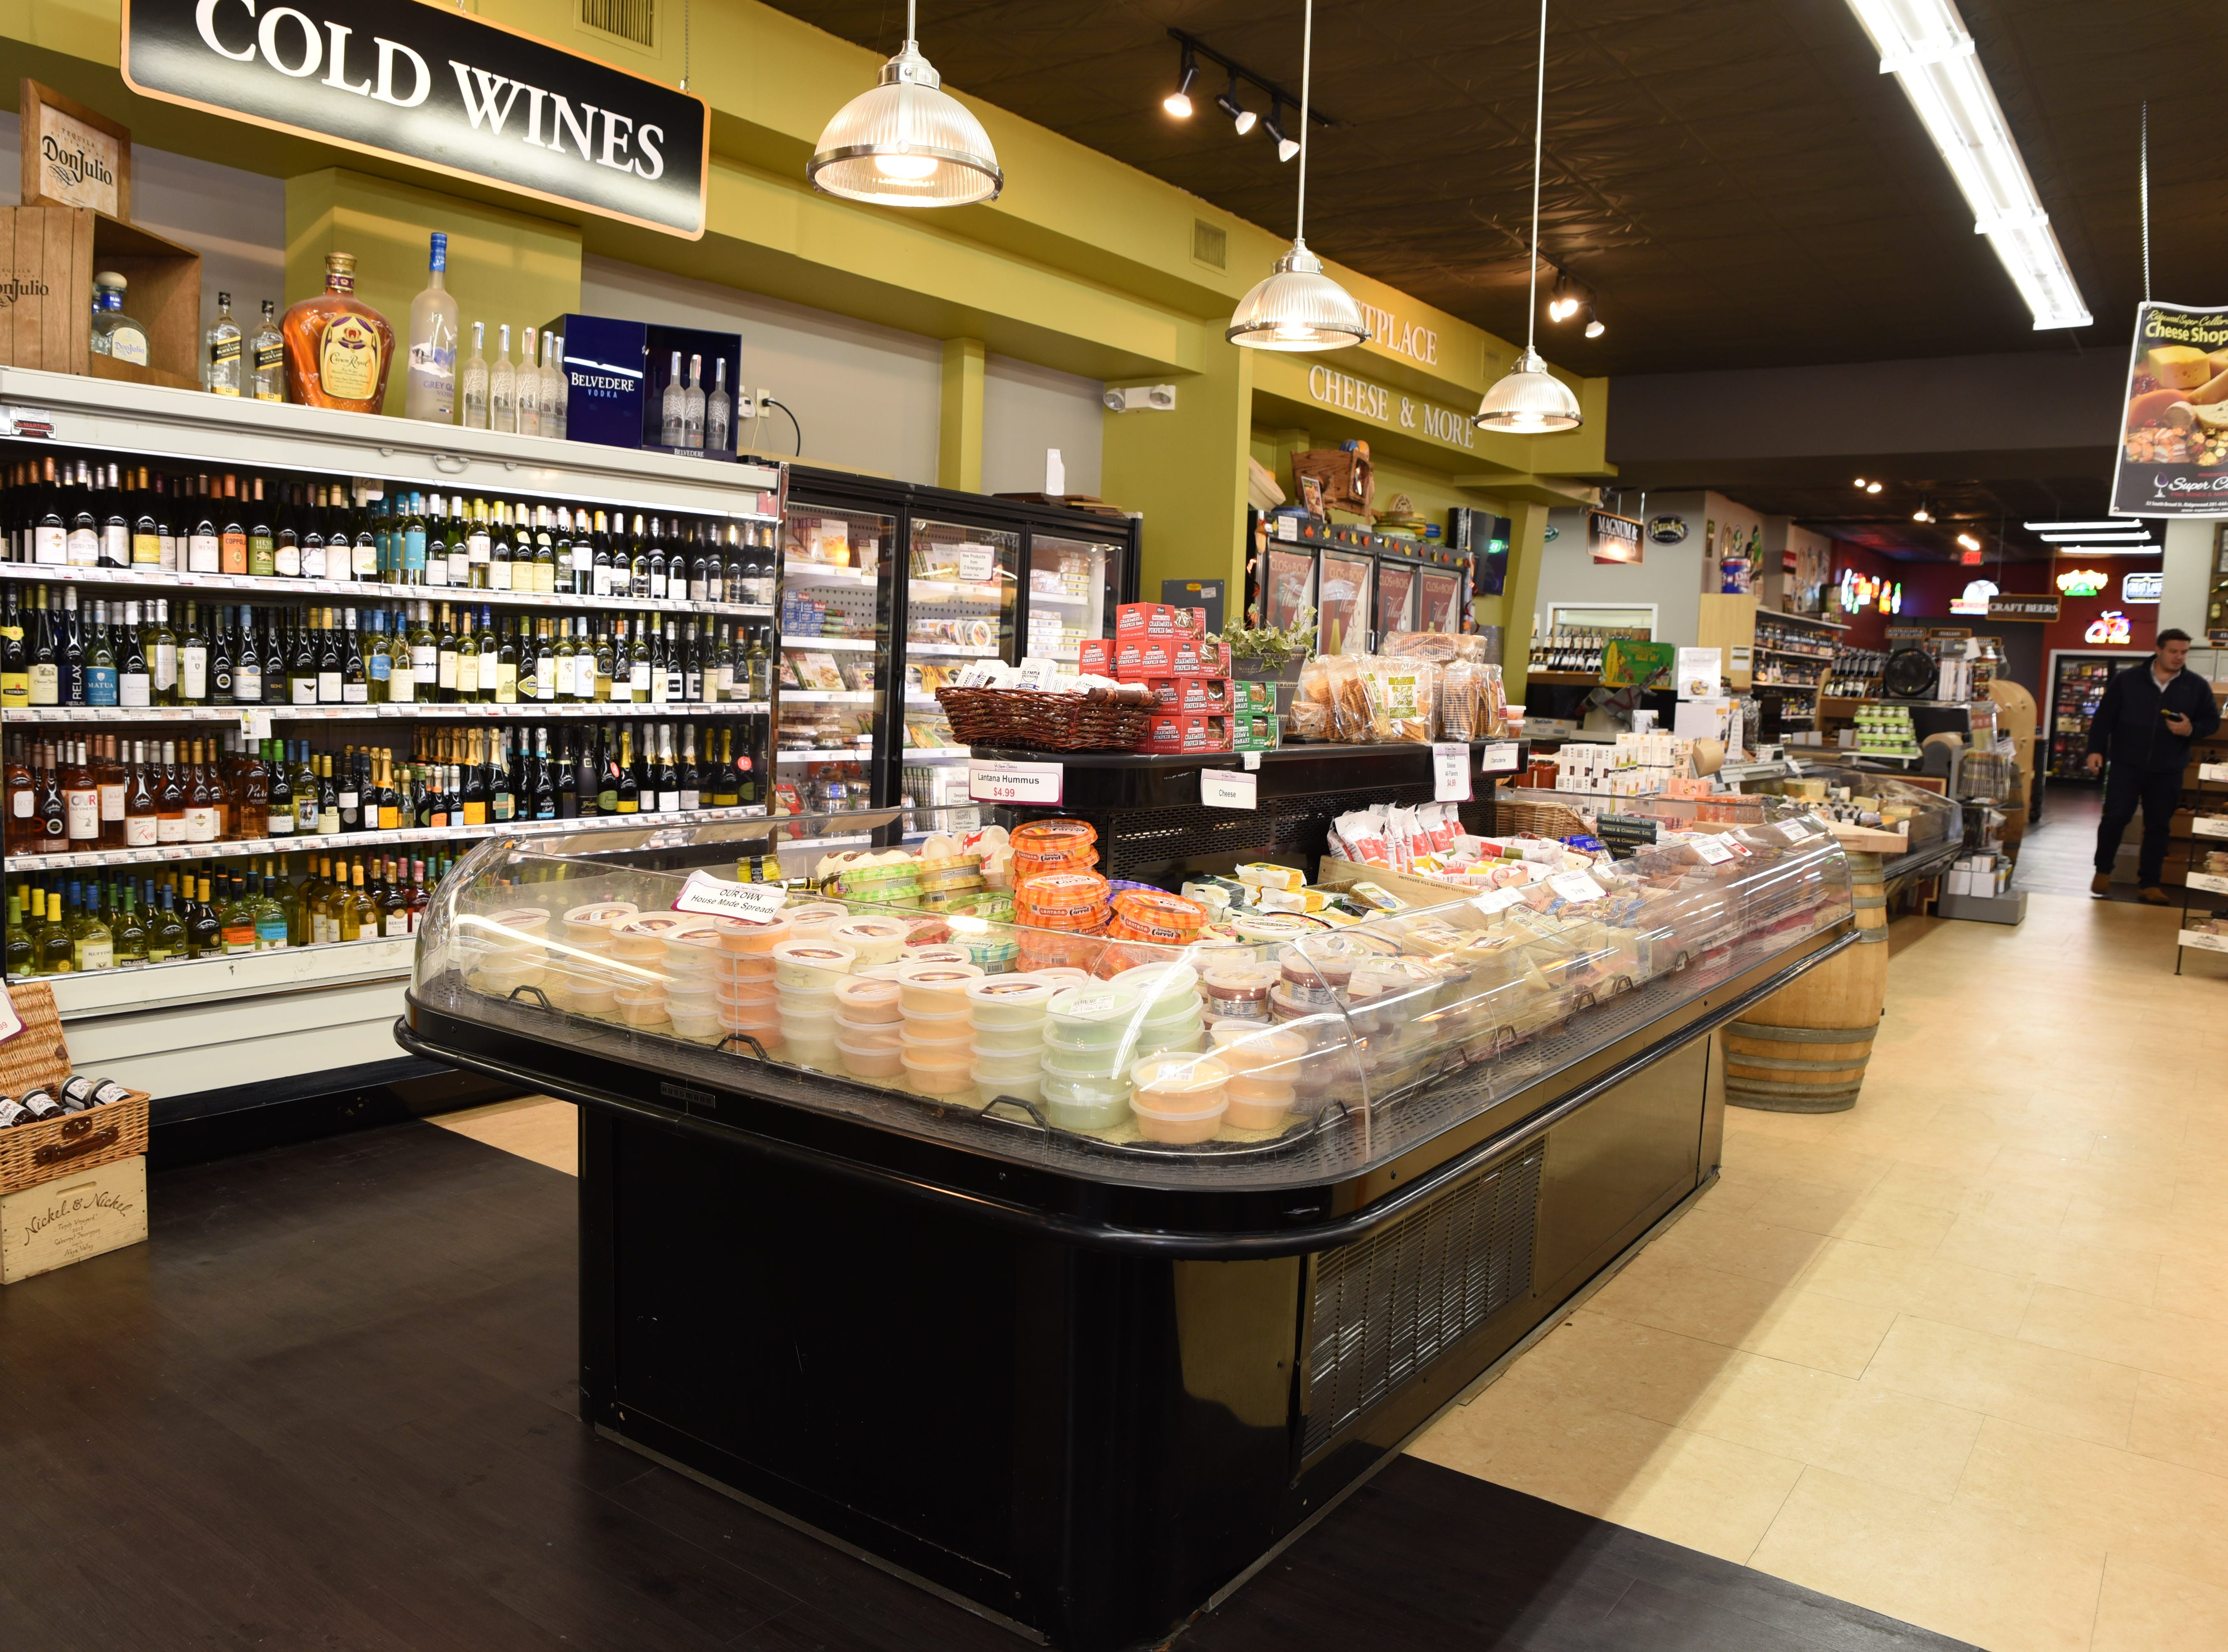 Super Cellars is more than just wines and beer -- it's also a cheese and gourmet shop in Ridgewood